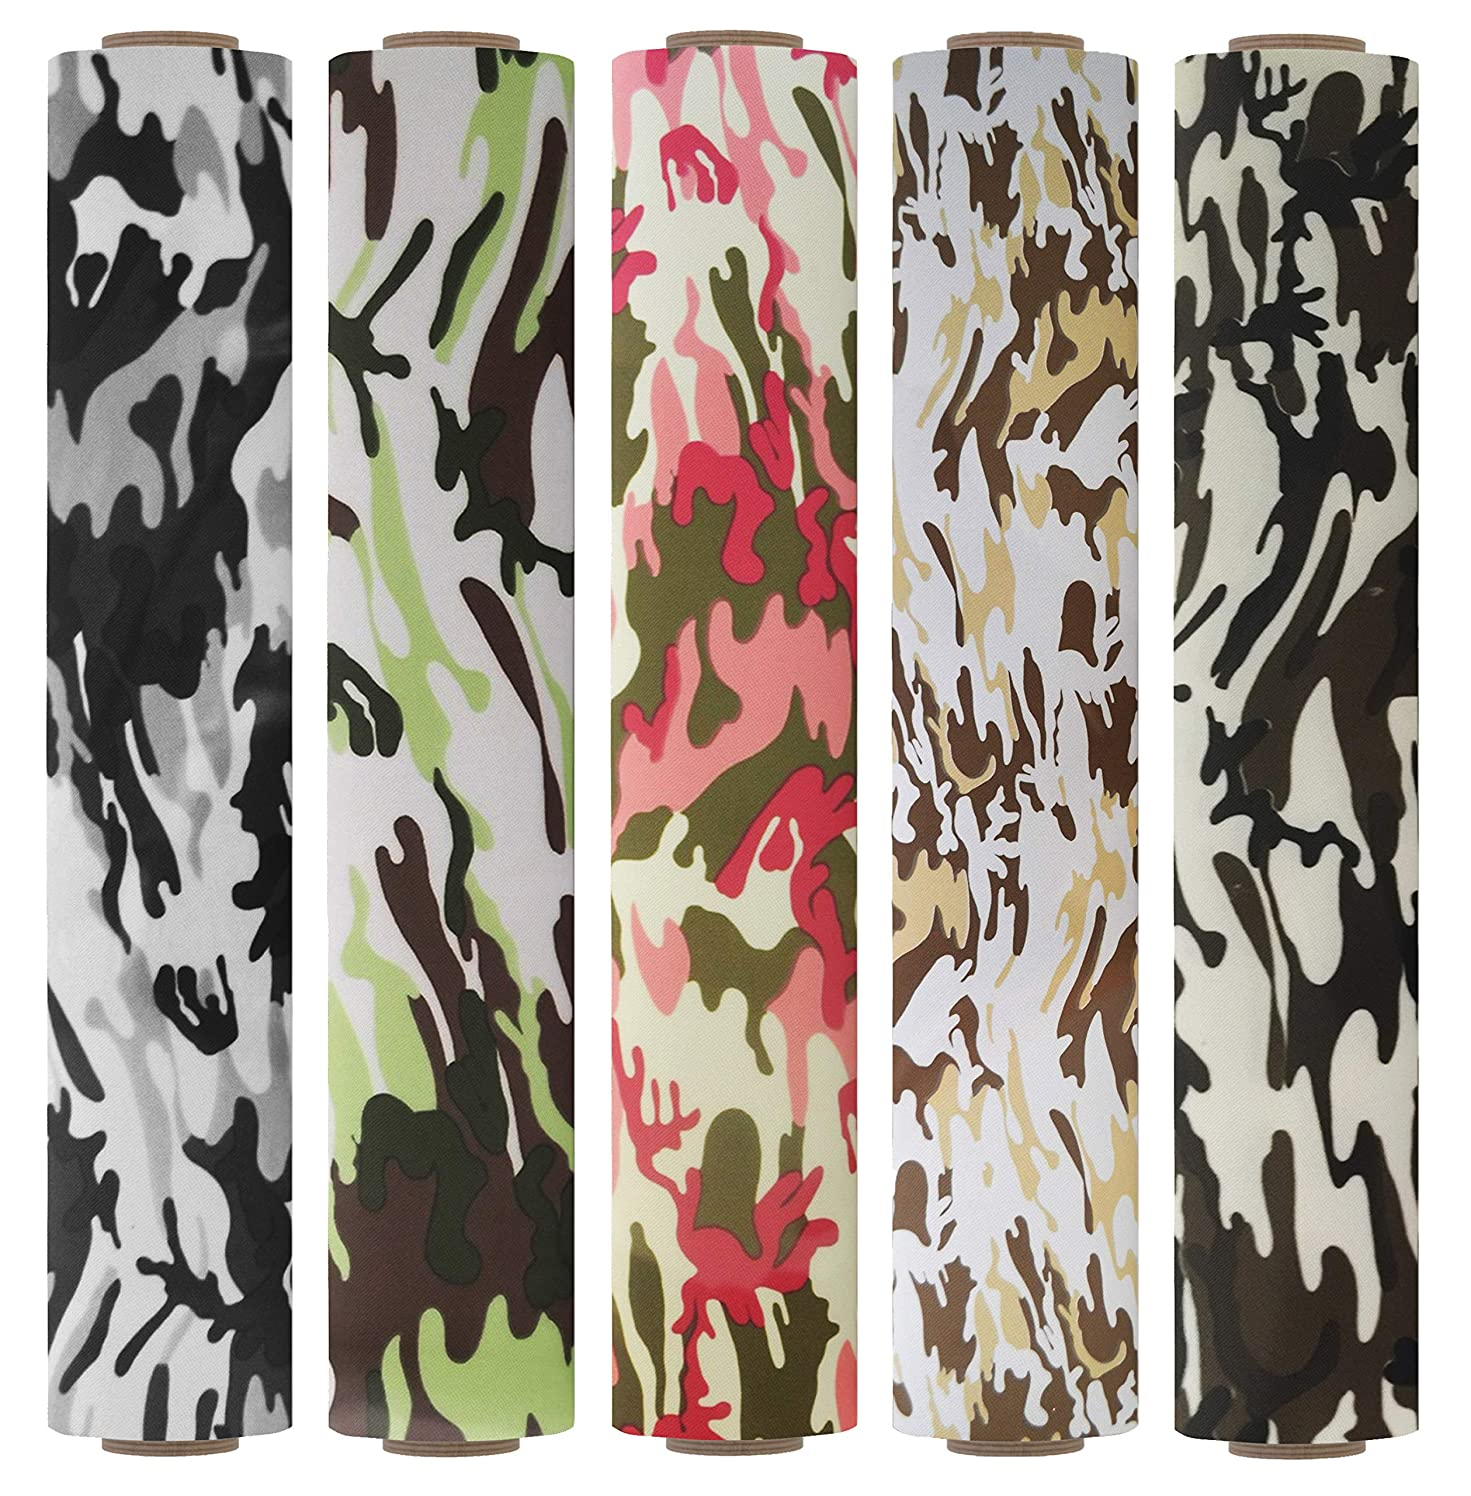 Firefly Craft Patterned Heat Transfer Vinyl for Silhouette and Cricut, 12 Inch by 19.5 Inch, 5 Pack Camouflage